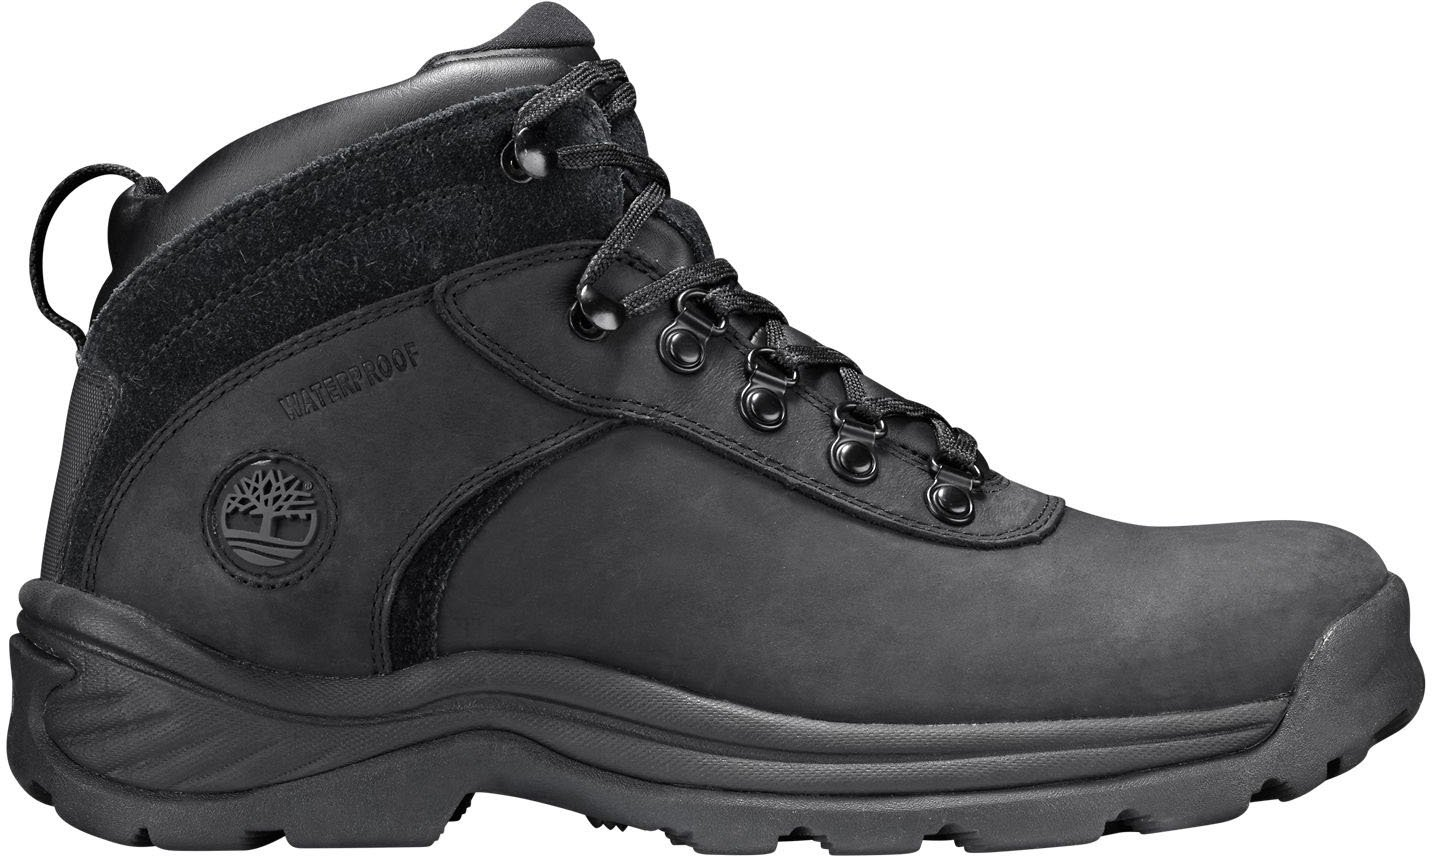 Timberland Men's Flume Waterproof Boot,Black,10.5 W US